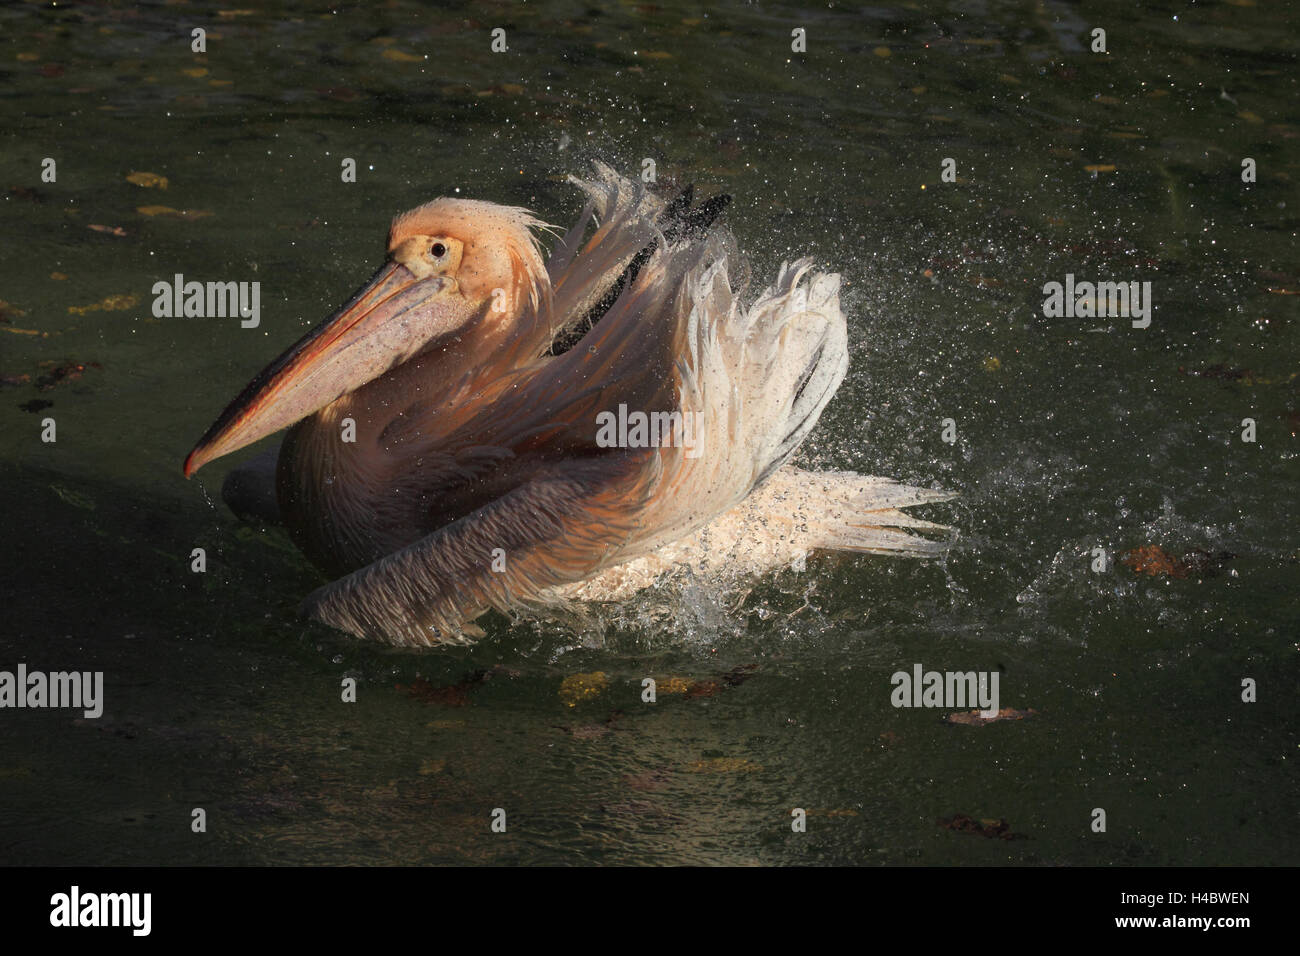 Great white pelican bathing Pelecanus onocrotalus - Stock Image